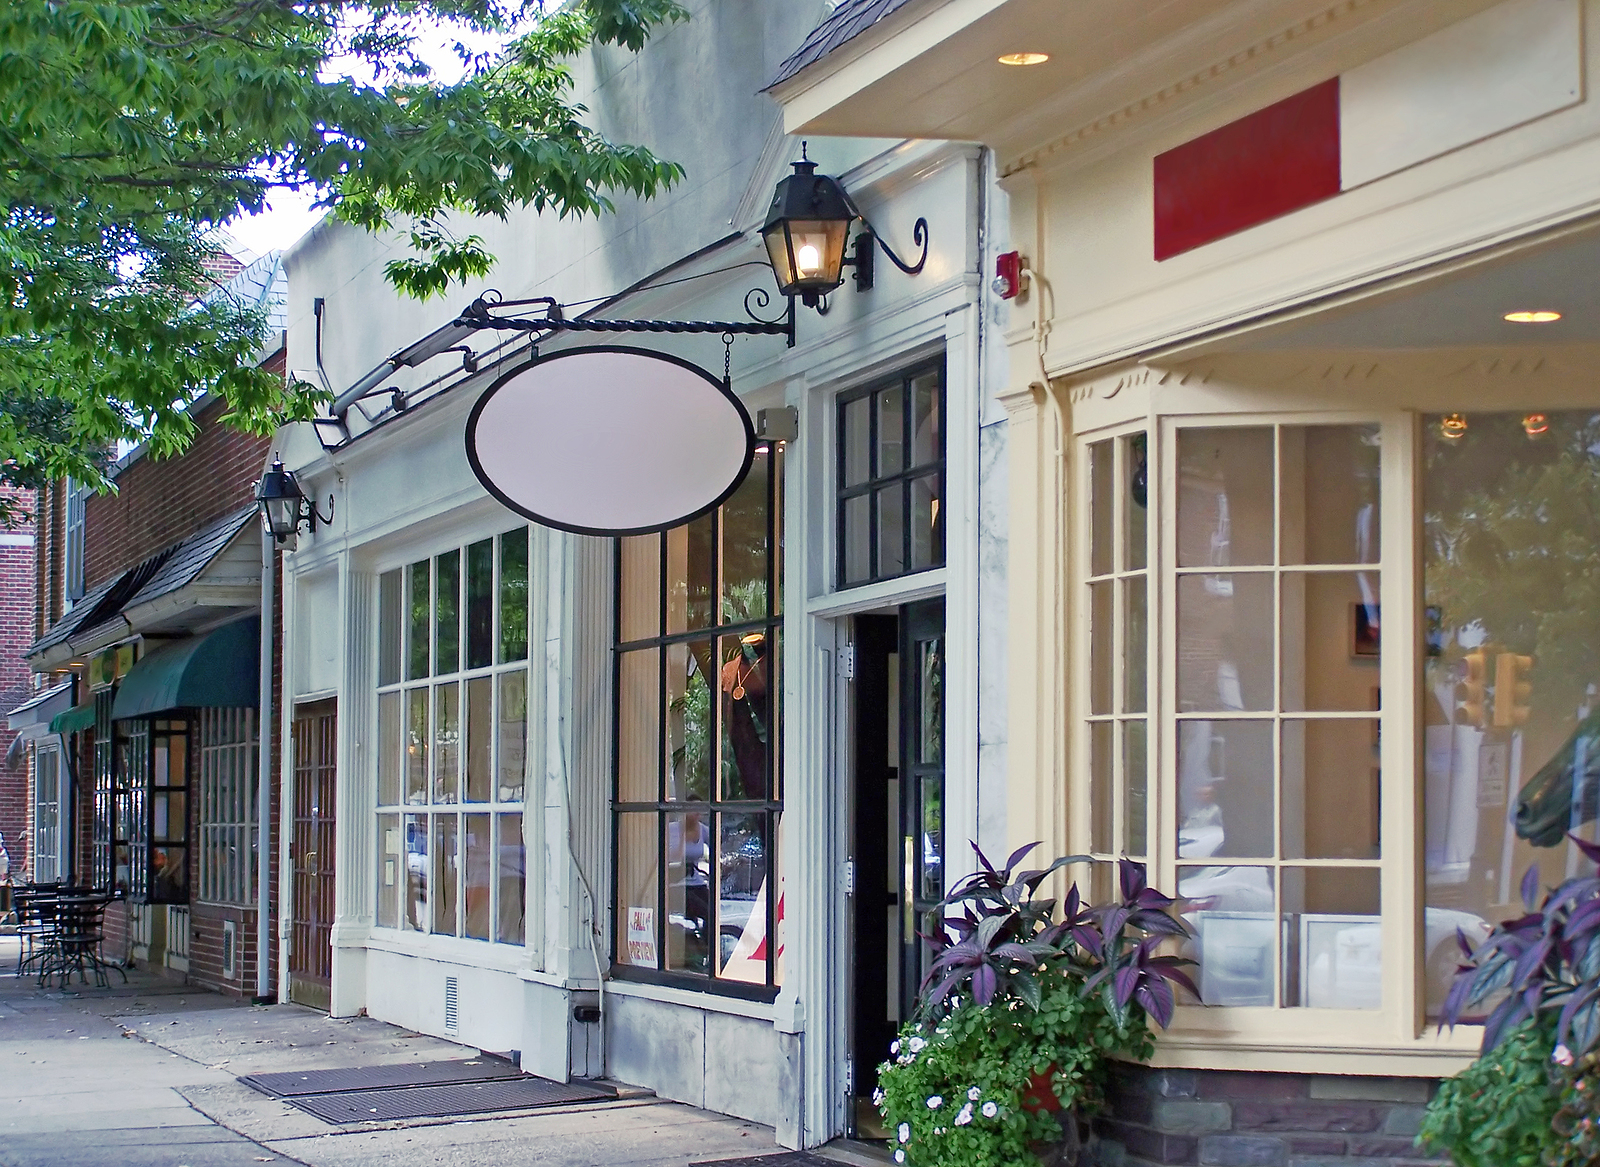 Renting Storefront or Office Space? 8 Pros & Cons